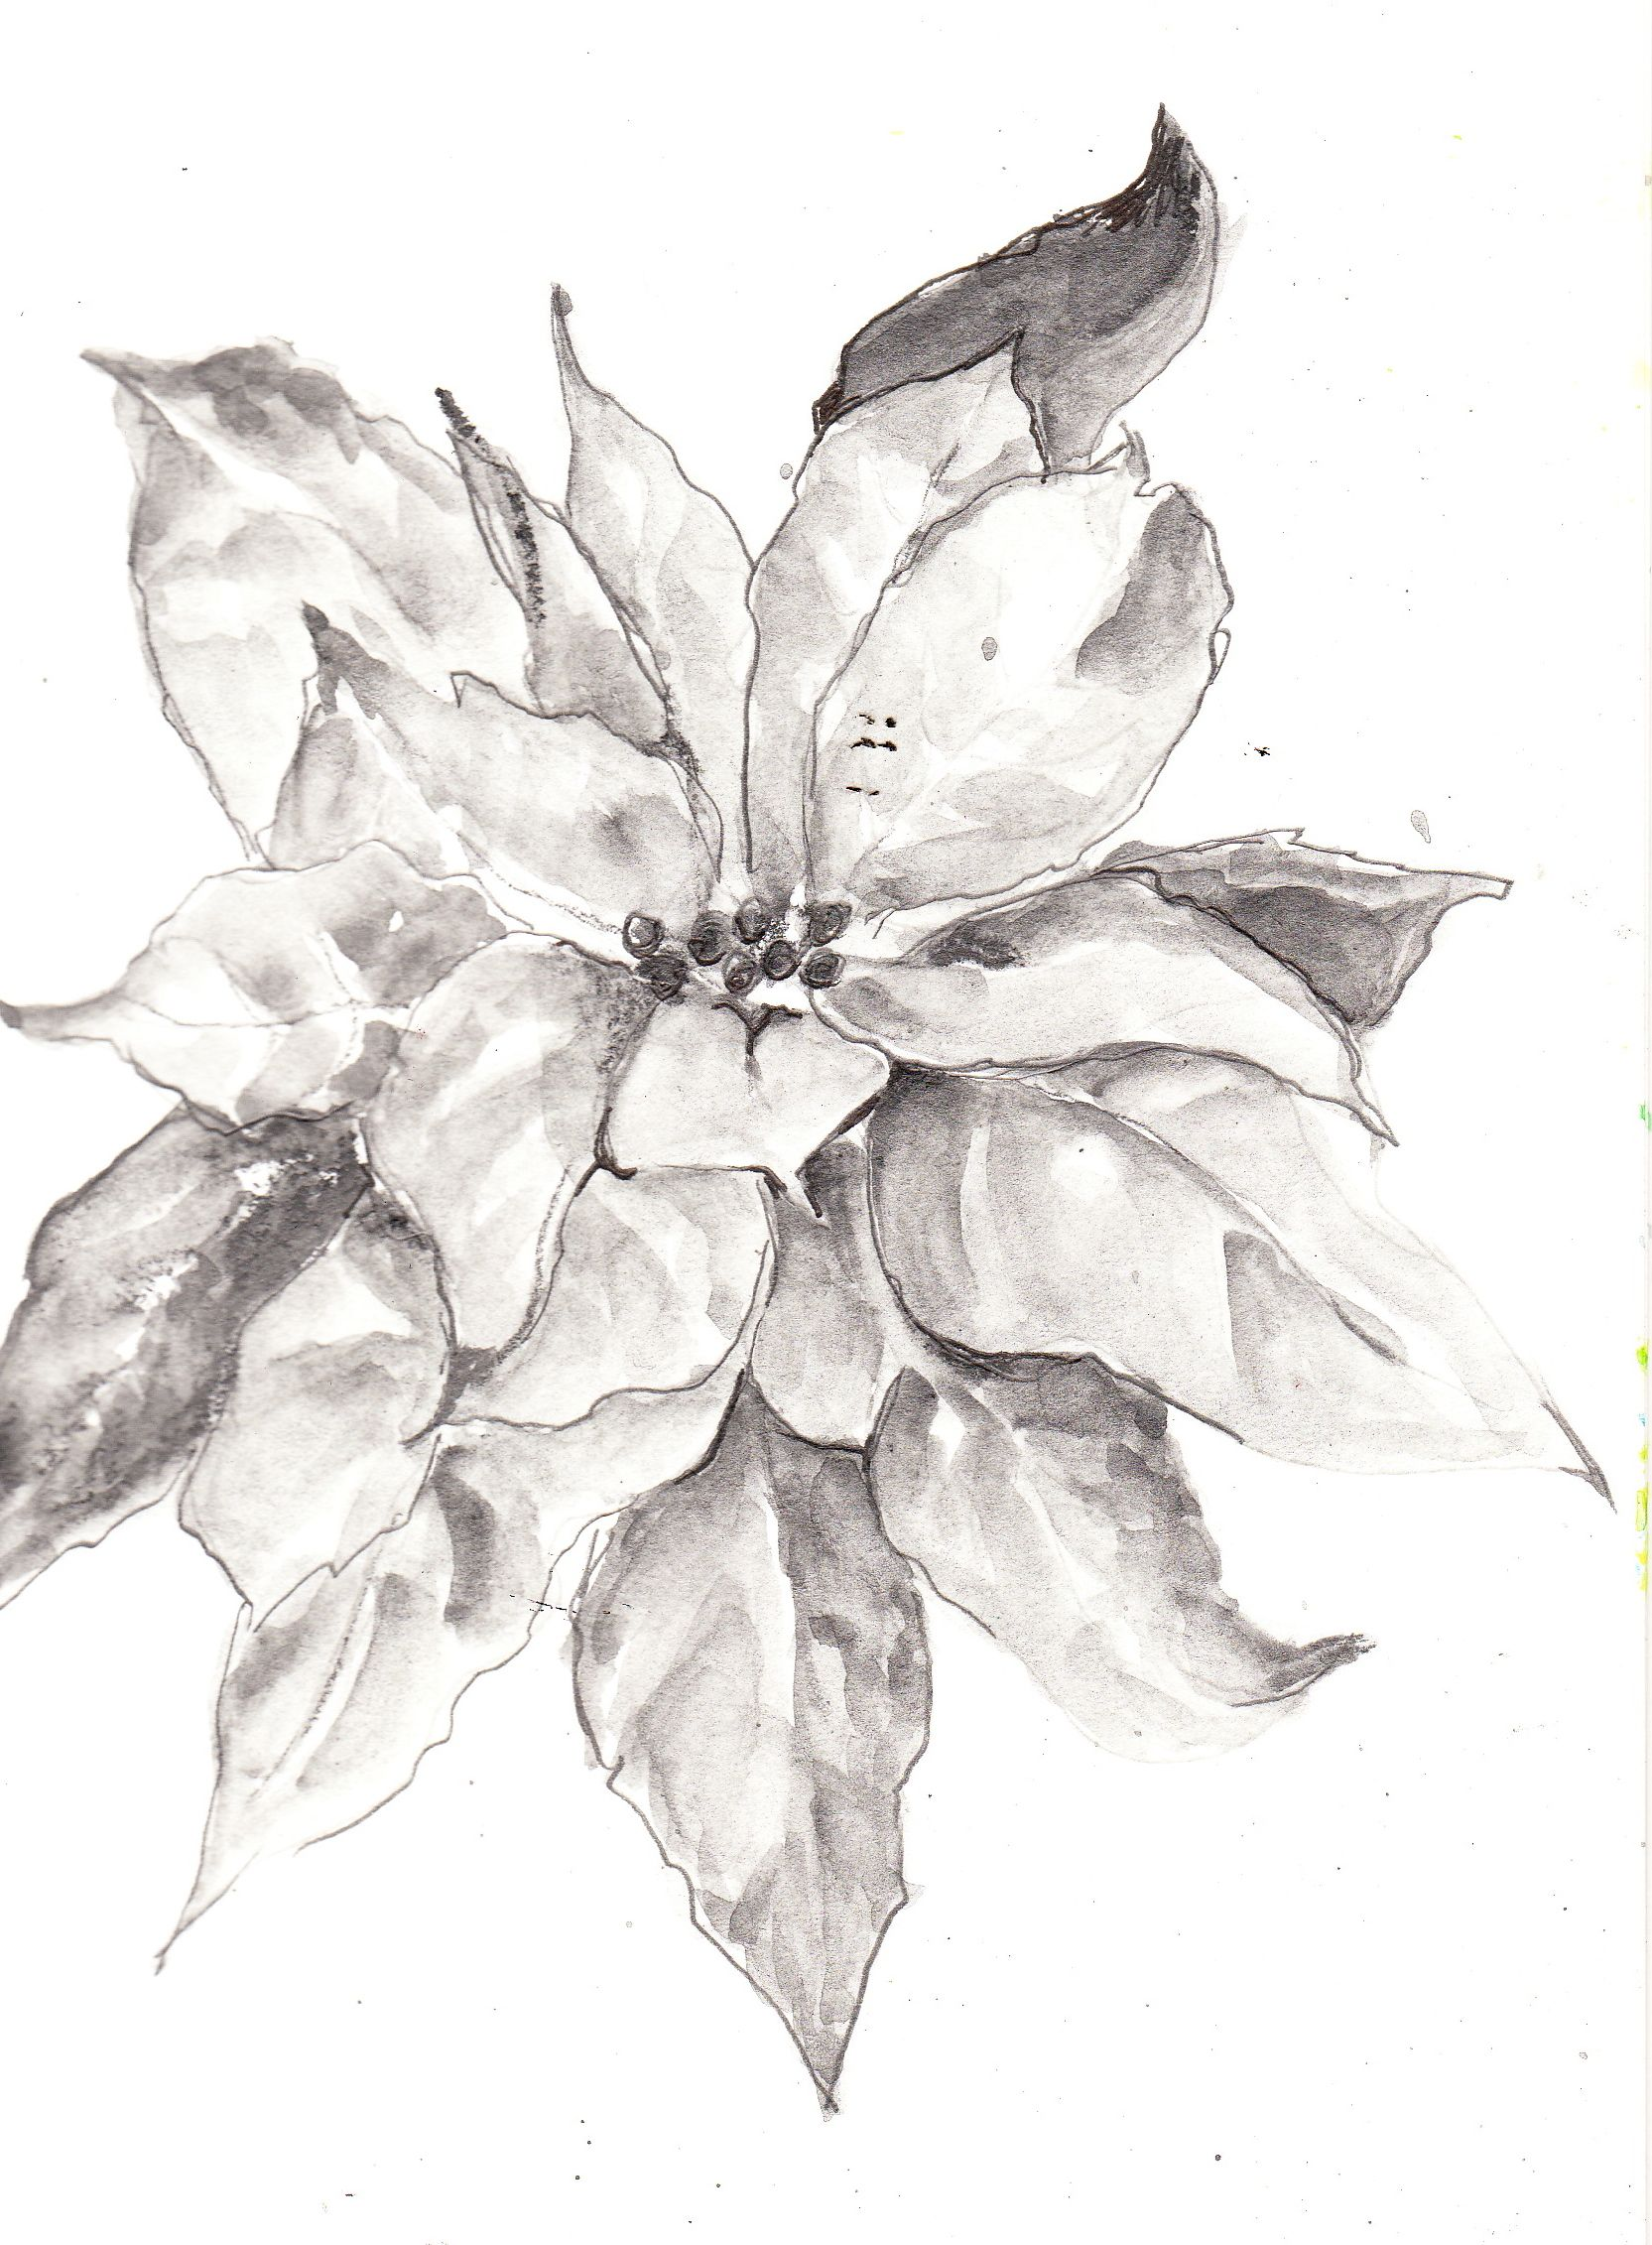 Image detail for Poinsettia Sketch using Sketch & Wash